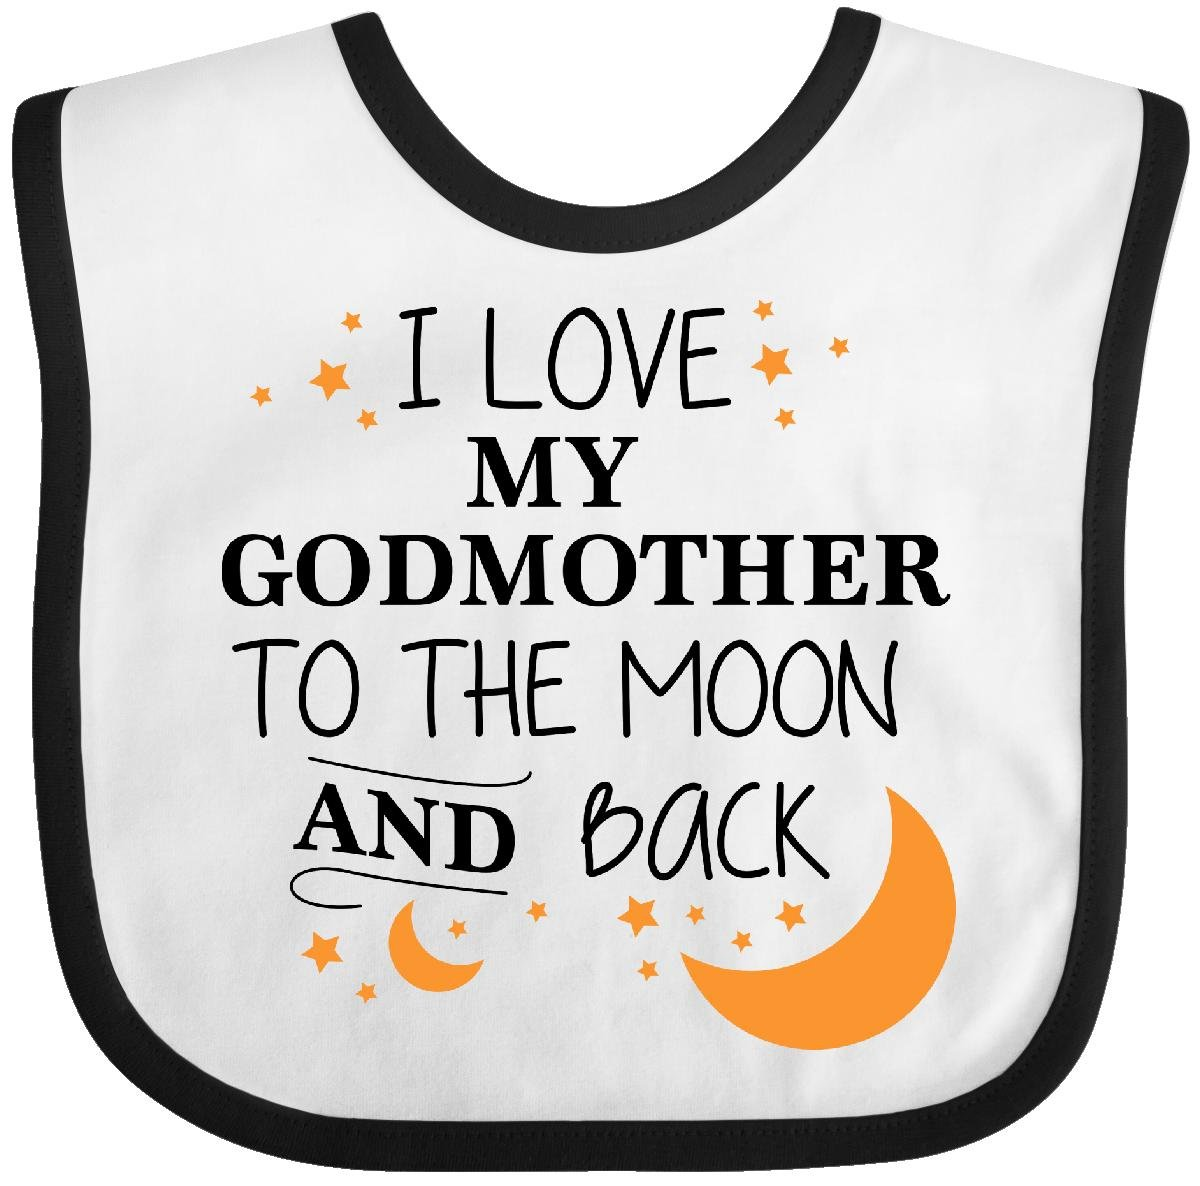 f88d15d92 Inktastic - I Love My Godmother To The Moon and Back Baby Bib White/Black  29641